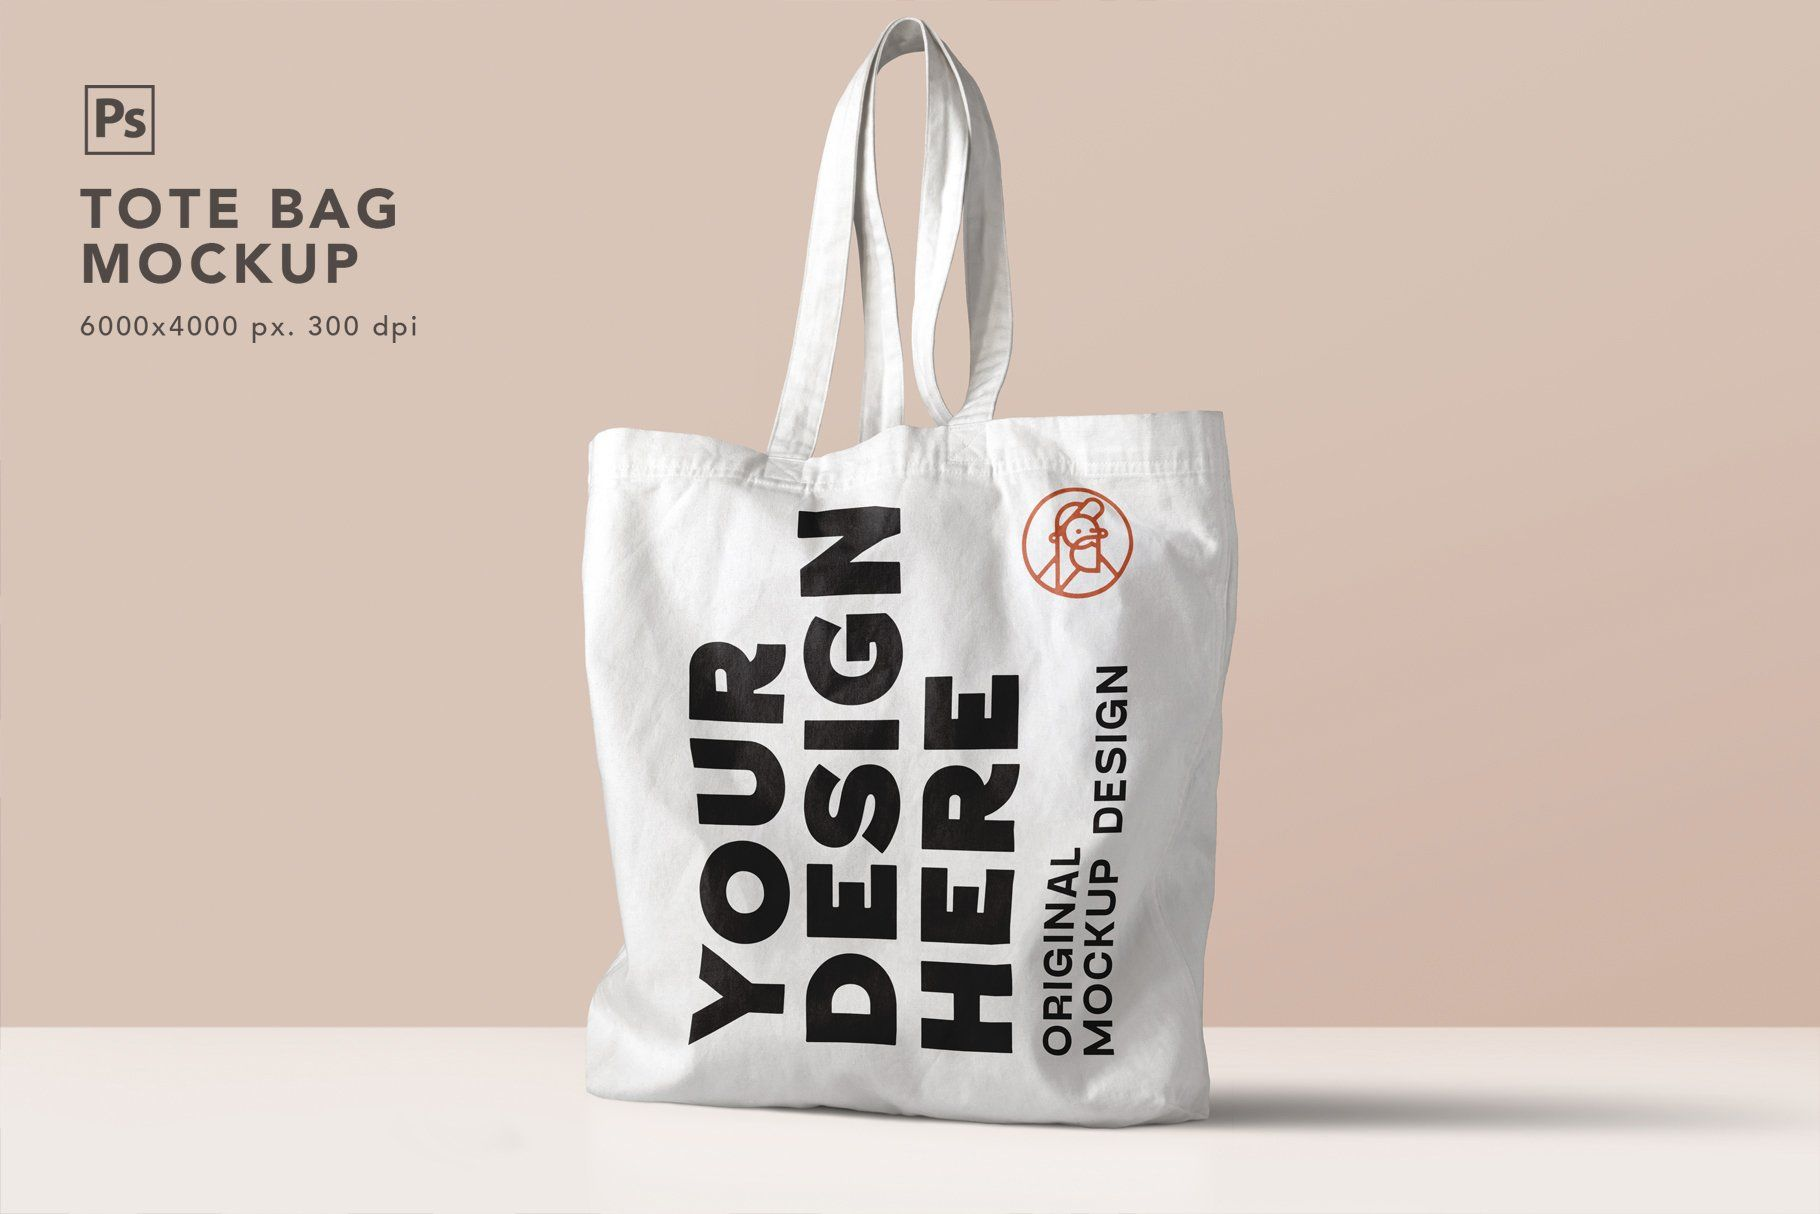 Featuring customizable designs, colors and backgrounds. Tote Bag Mockup Tote Bag Bag Mockup Bags